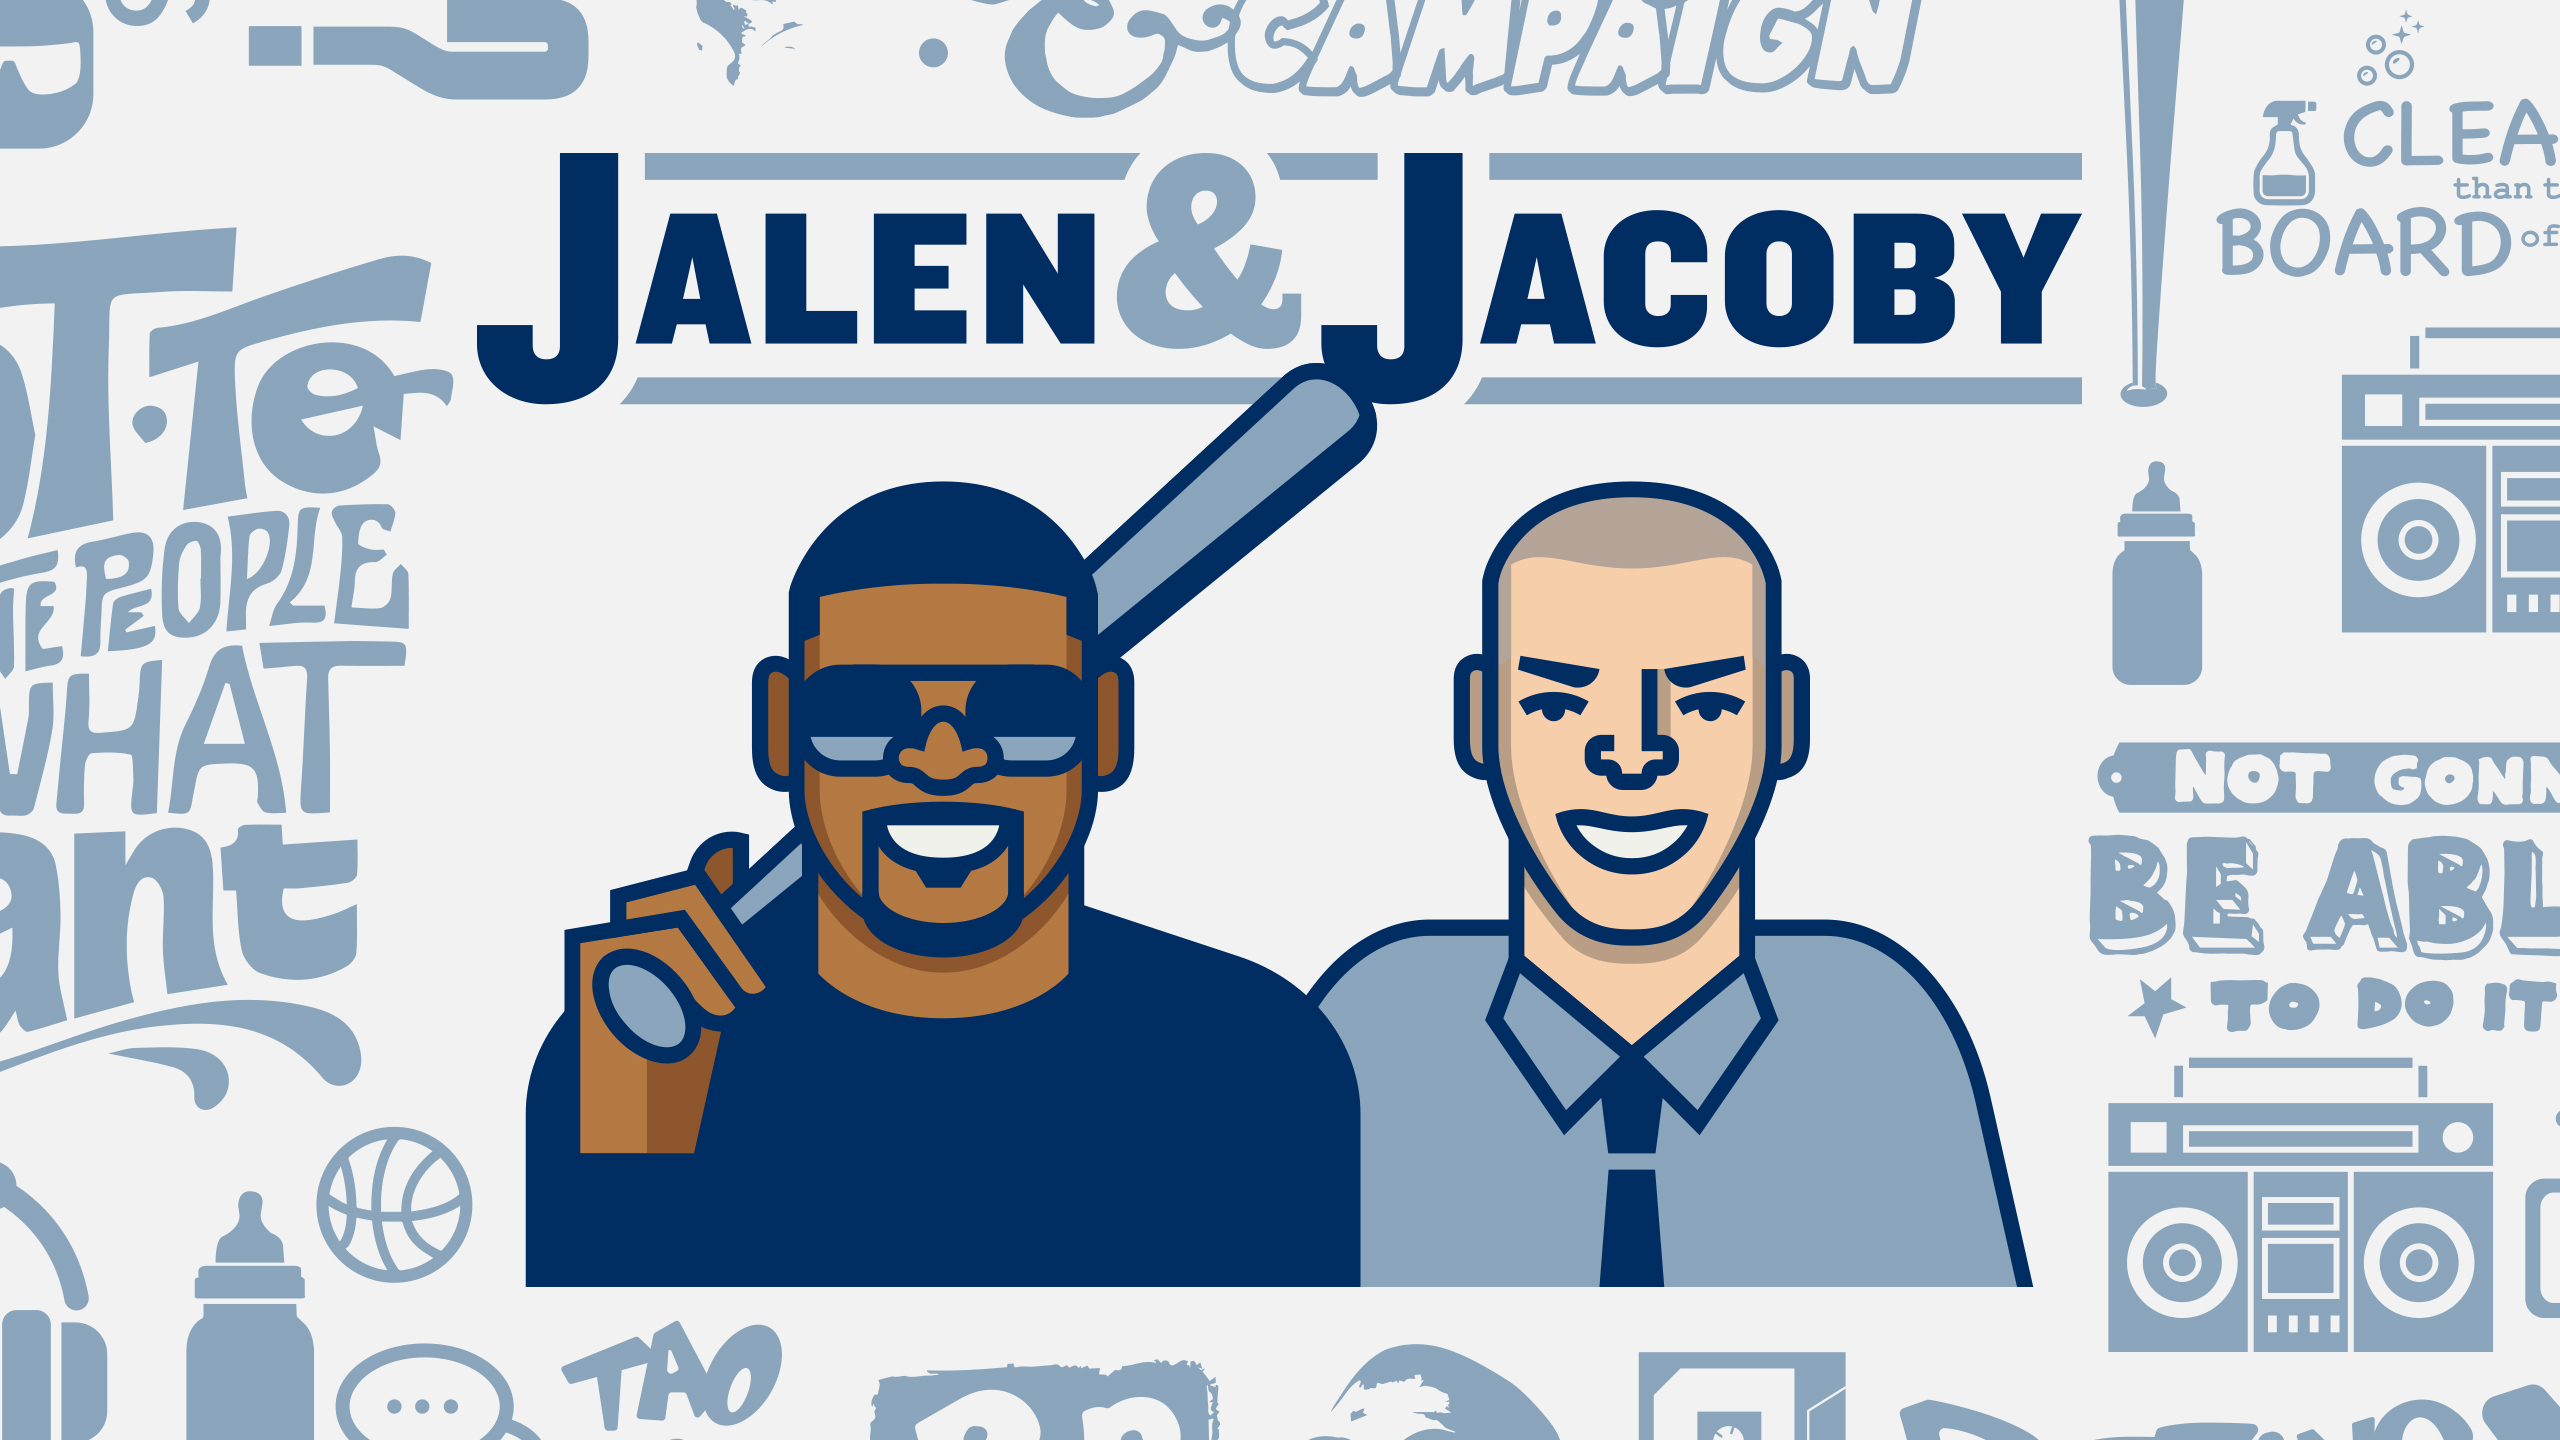 Fri, 9/21 - Jalen & Jacoby